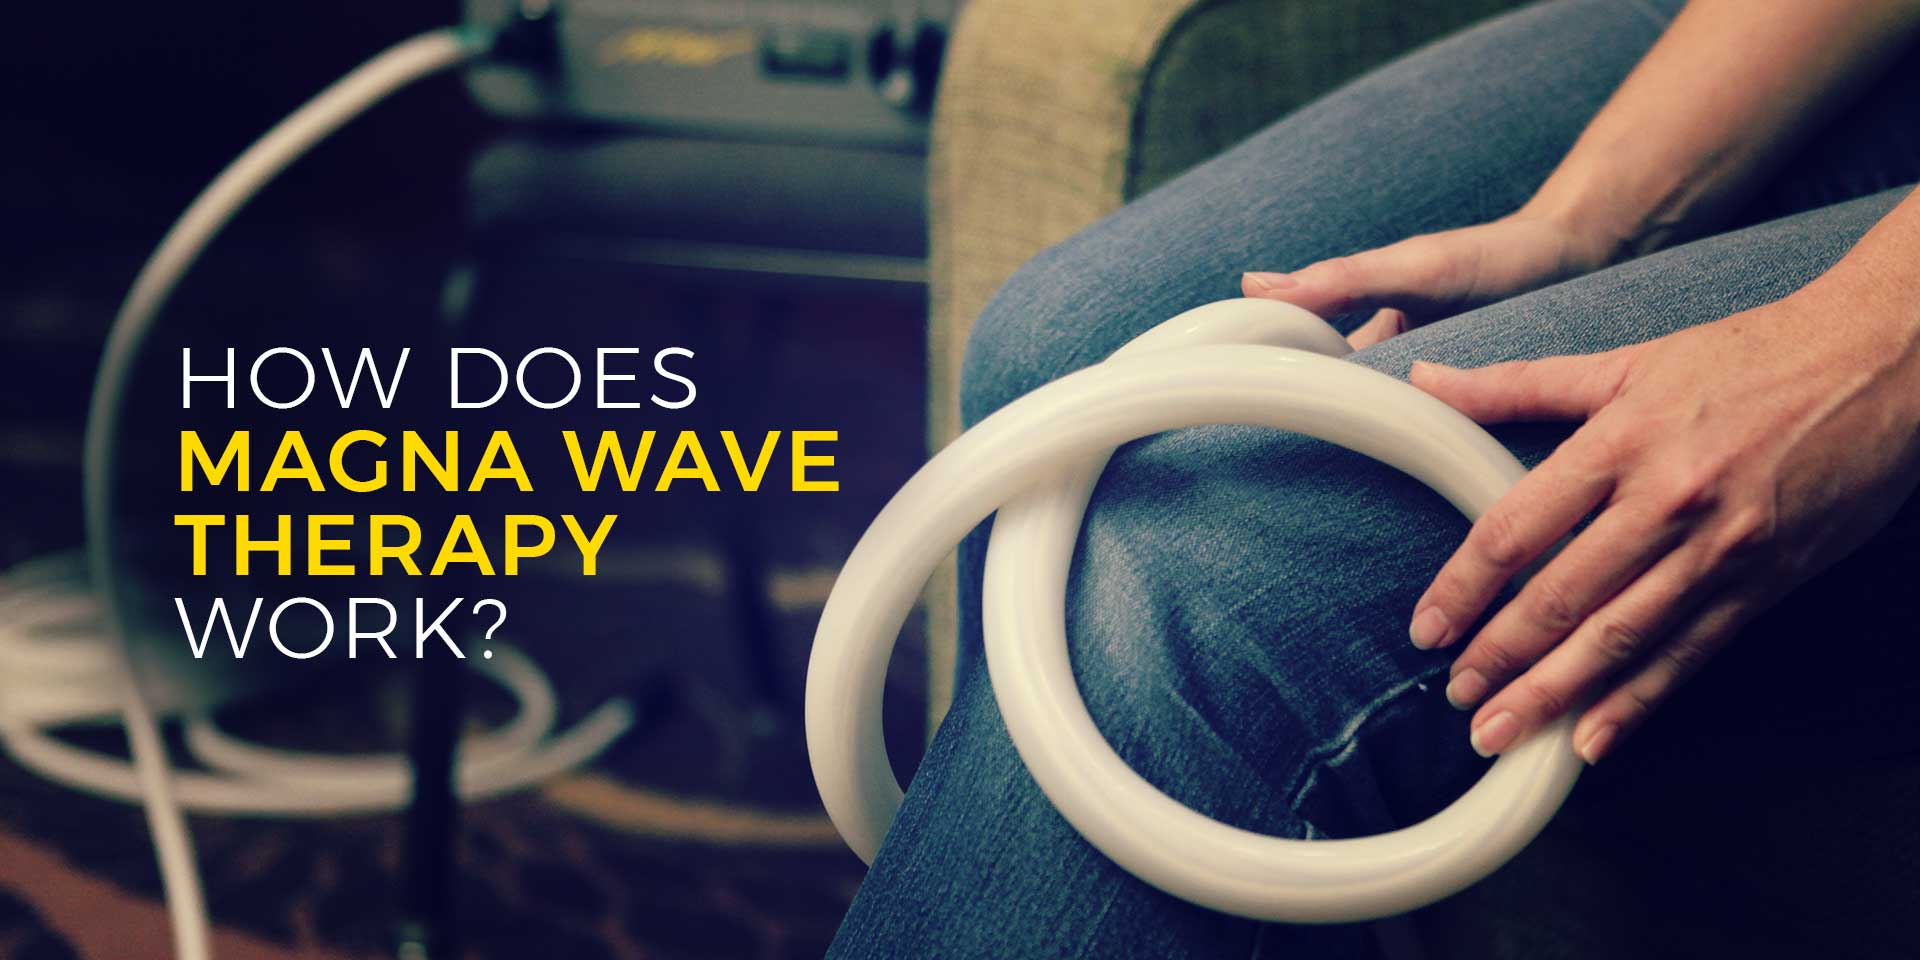 How Does Magna Wave Therapy Work?